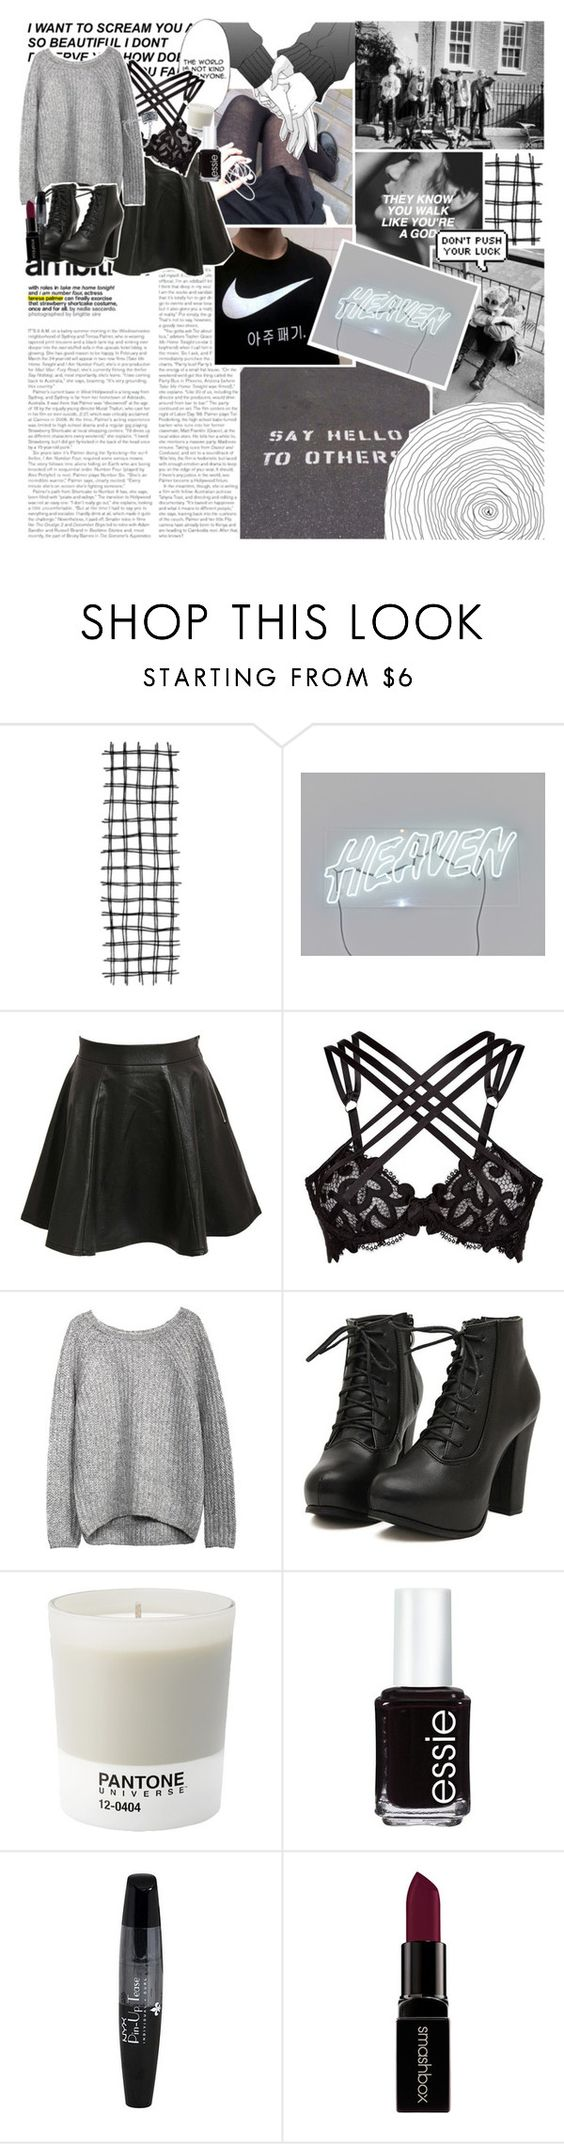 """""""please close those pretty lips"""" by calliopes ❤ liked on Polyvore featuring Pilot, Agent Provocateur, Calle, Pantone, Essie, NYX, Smashbox, Bling Jewelry, women's clothing and women"""